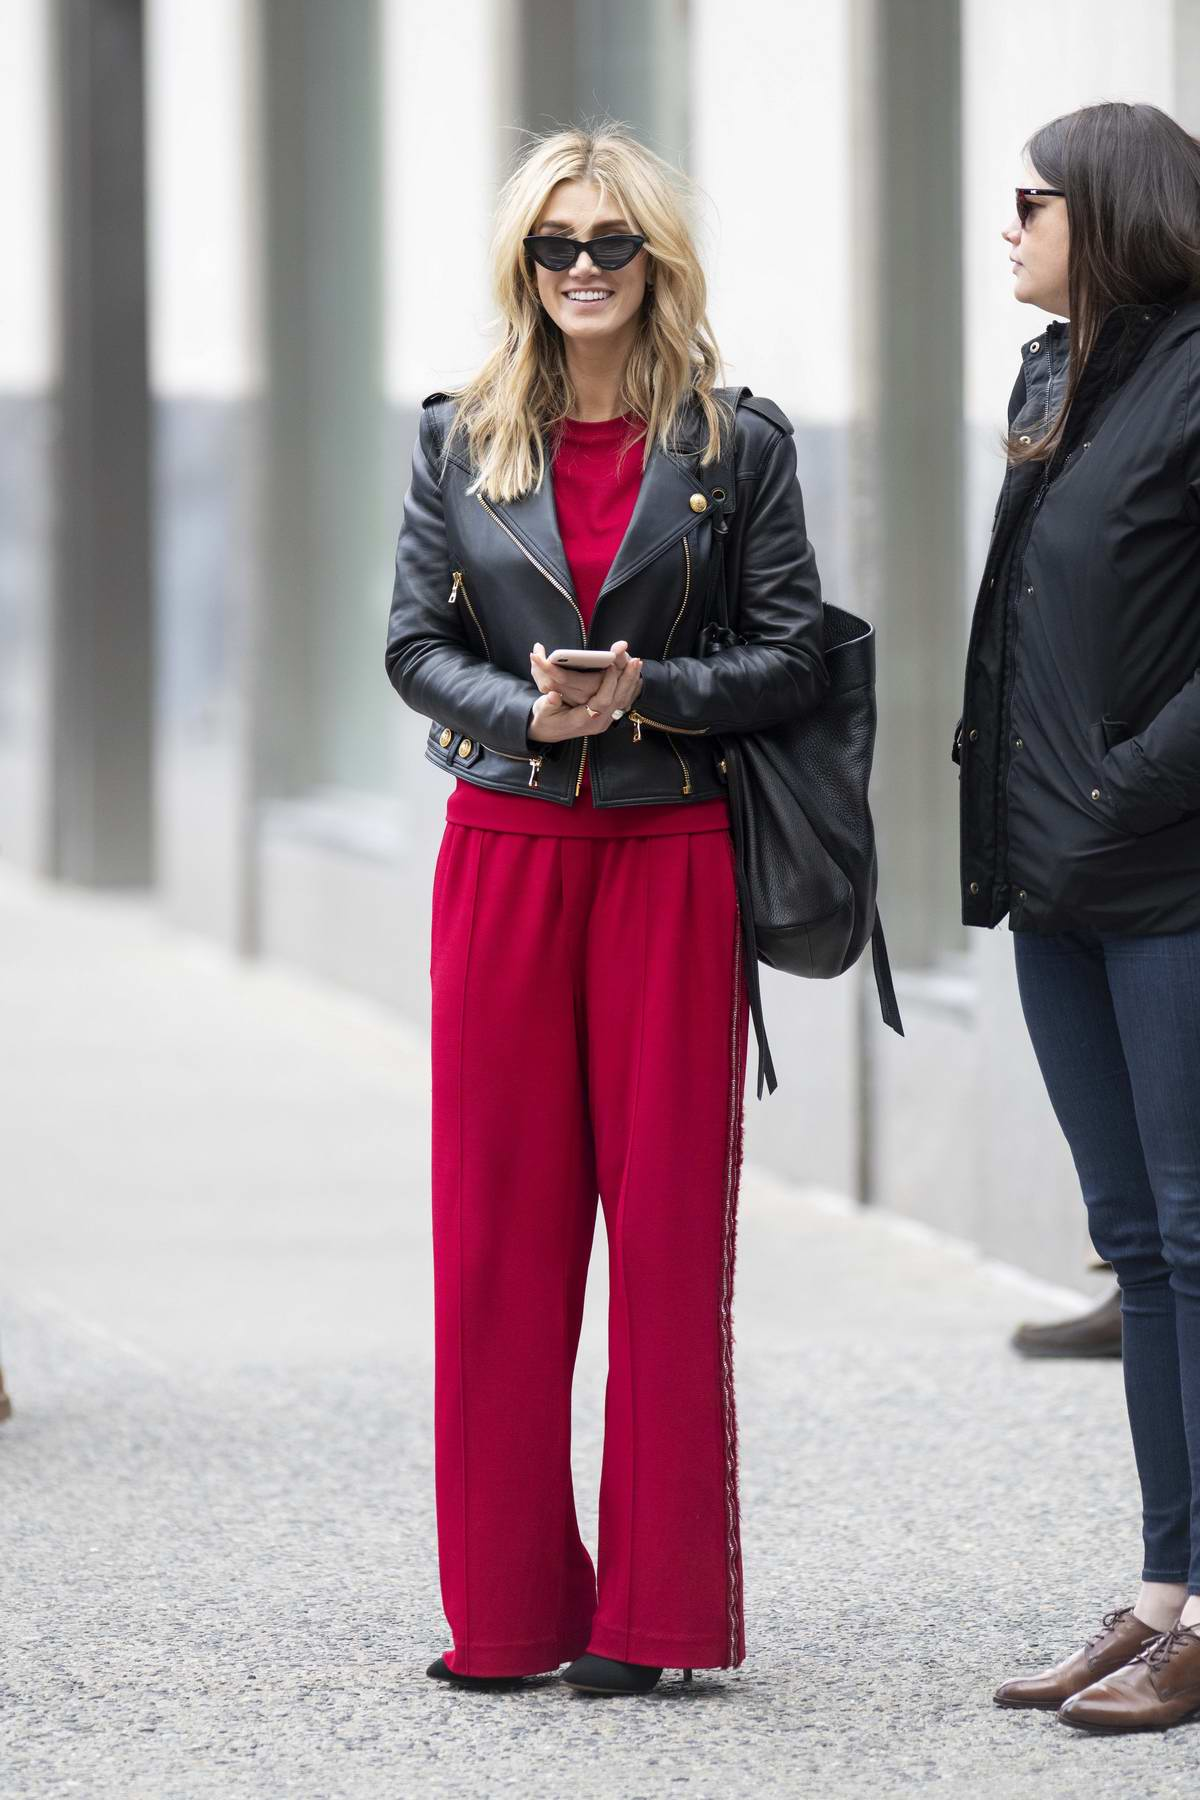 delta goodrem steps out in an eye-catching red outfit on ...